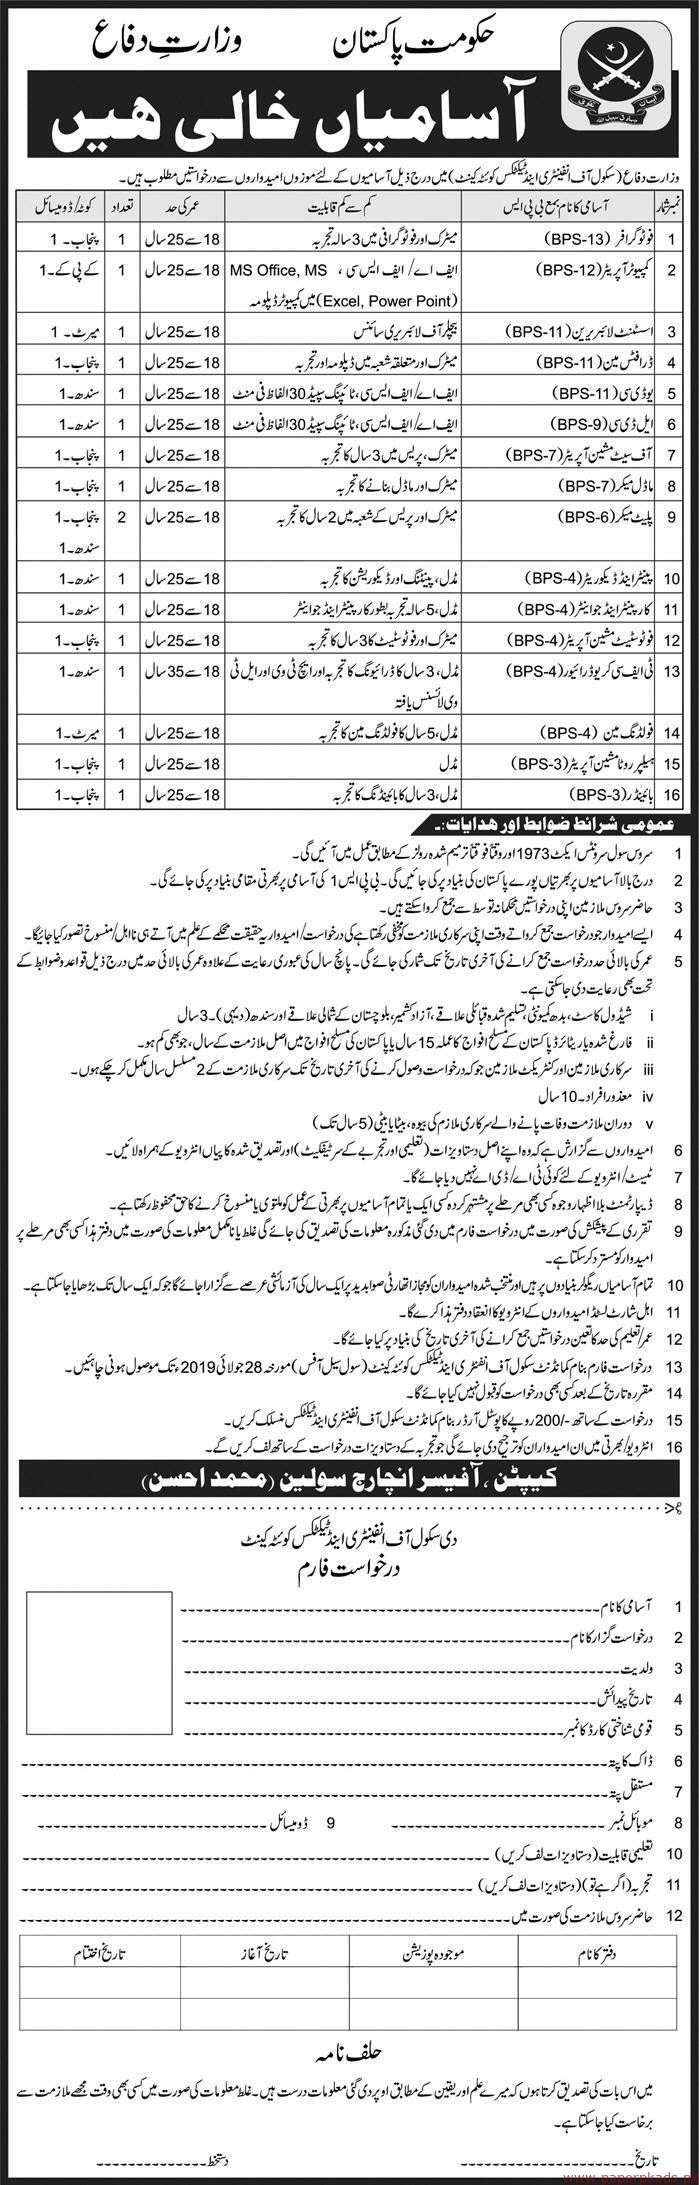 Government of Pakistan Ministry of Defence Jobs 2019 Latest